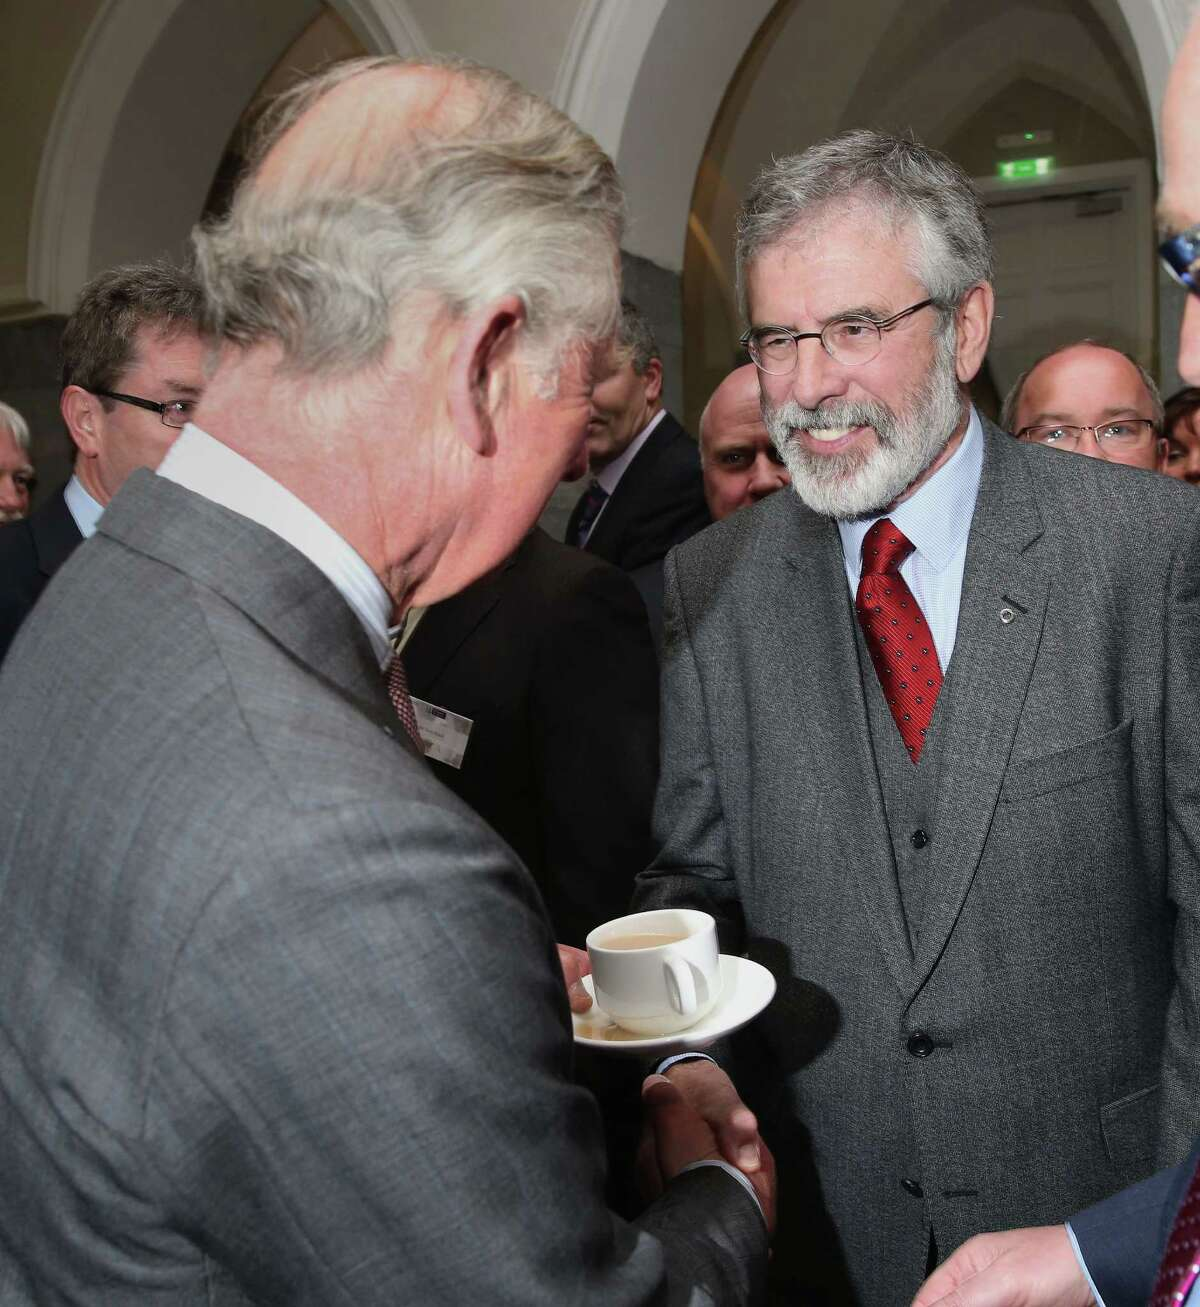 Britain's Prince Charles. left, shakes hands with Sinn Fein president Gerry Adams at the National University of Ireland in Galway, Ireland, Tuesday May 19, 2015. Prince Charles has begun an official visit to Ireland featuring two new milestones of peacemaking: his first meeting with leaders of the Irish nationalist Sinn Fein party, and his first trip to the fishing village where the Irish Republican Army killed his great-uncle 36 years ago. It is Charles' third trip to the Irish Republic since the outlawed IRA called a 1994 cease-fire. (Brian Lawless/Pool photo via AP)